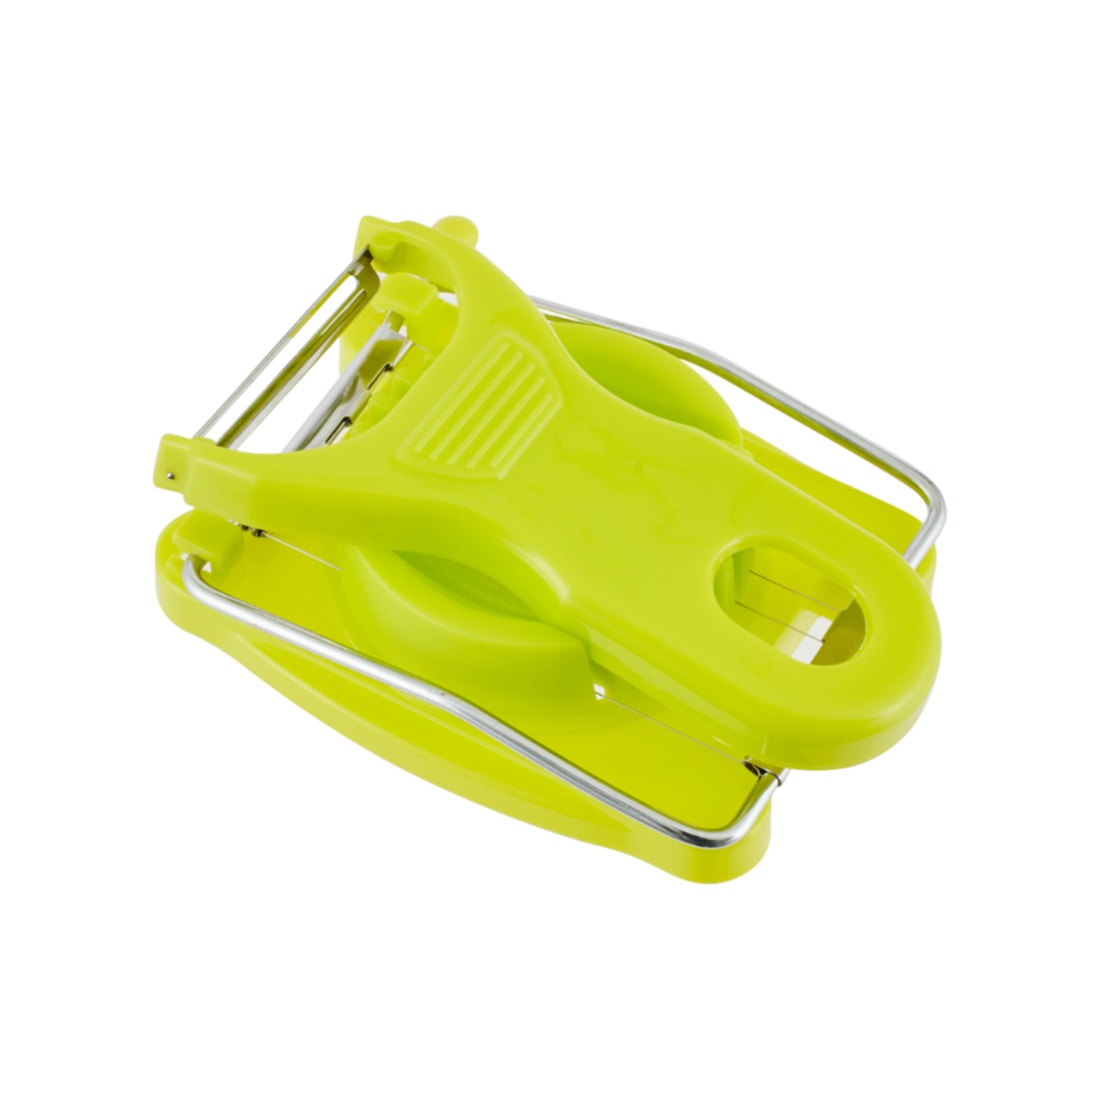 Kitchen Aid Egg Cutter&Peeler Set Stainless steel Kitchen Tools in Green Colour by Living Essence